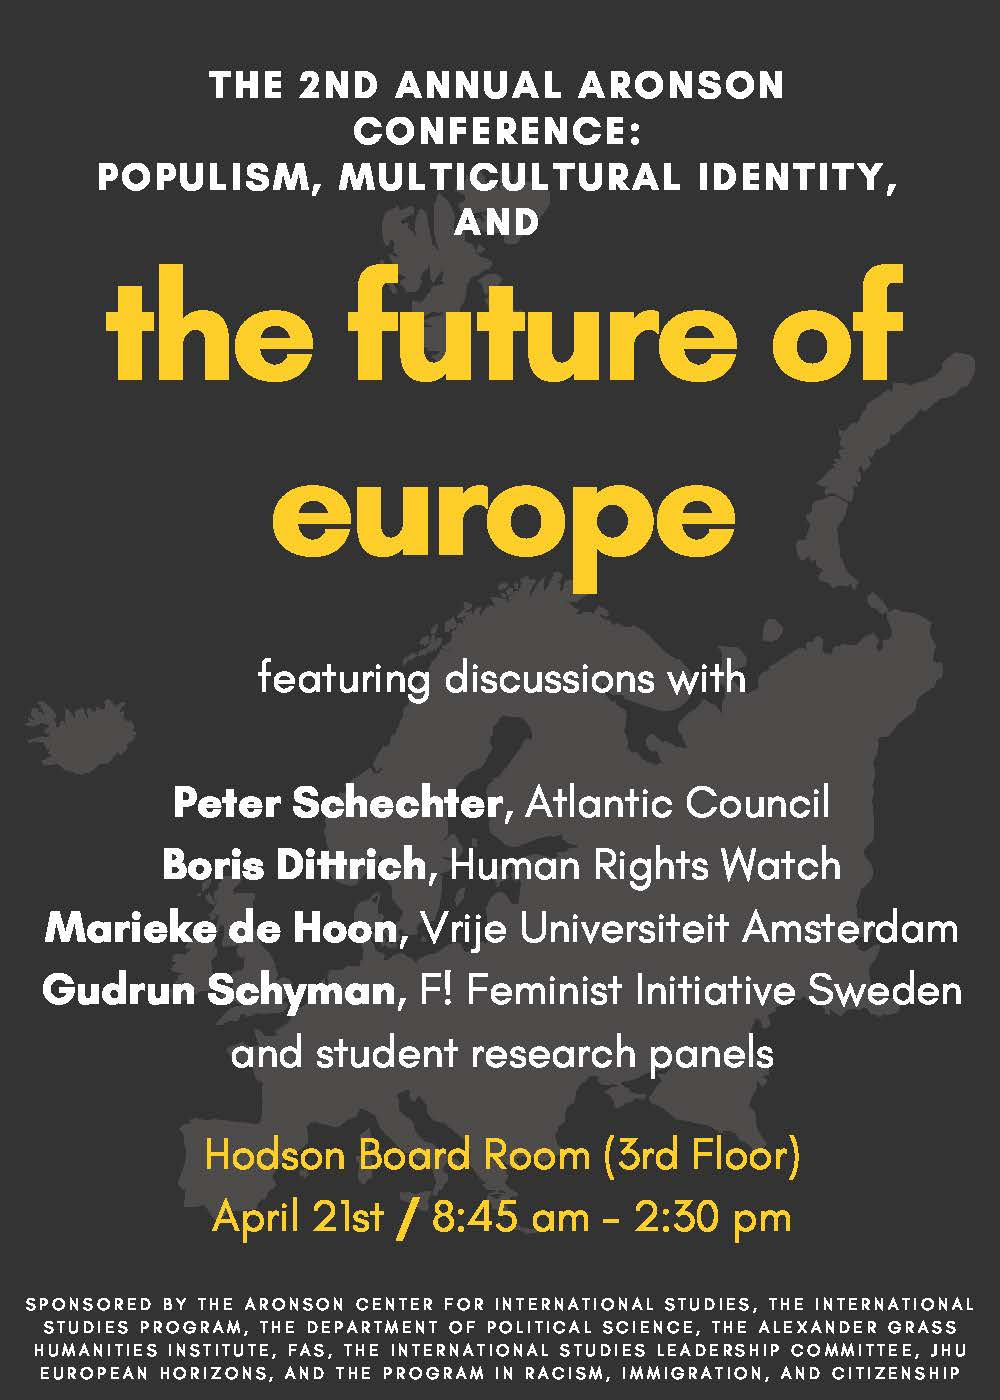 Aronson Conference discusses the future of Europe